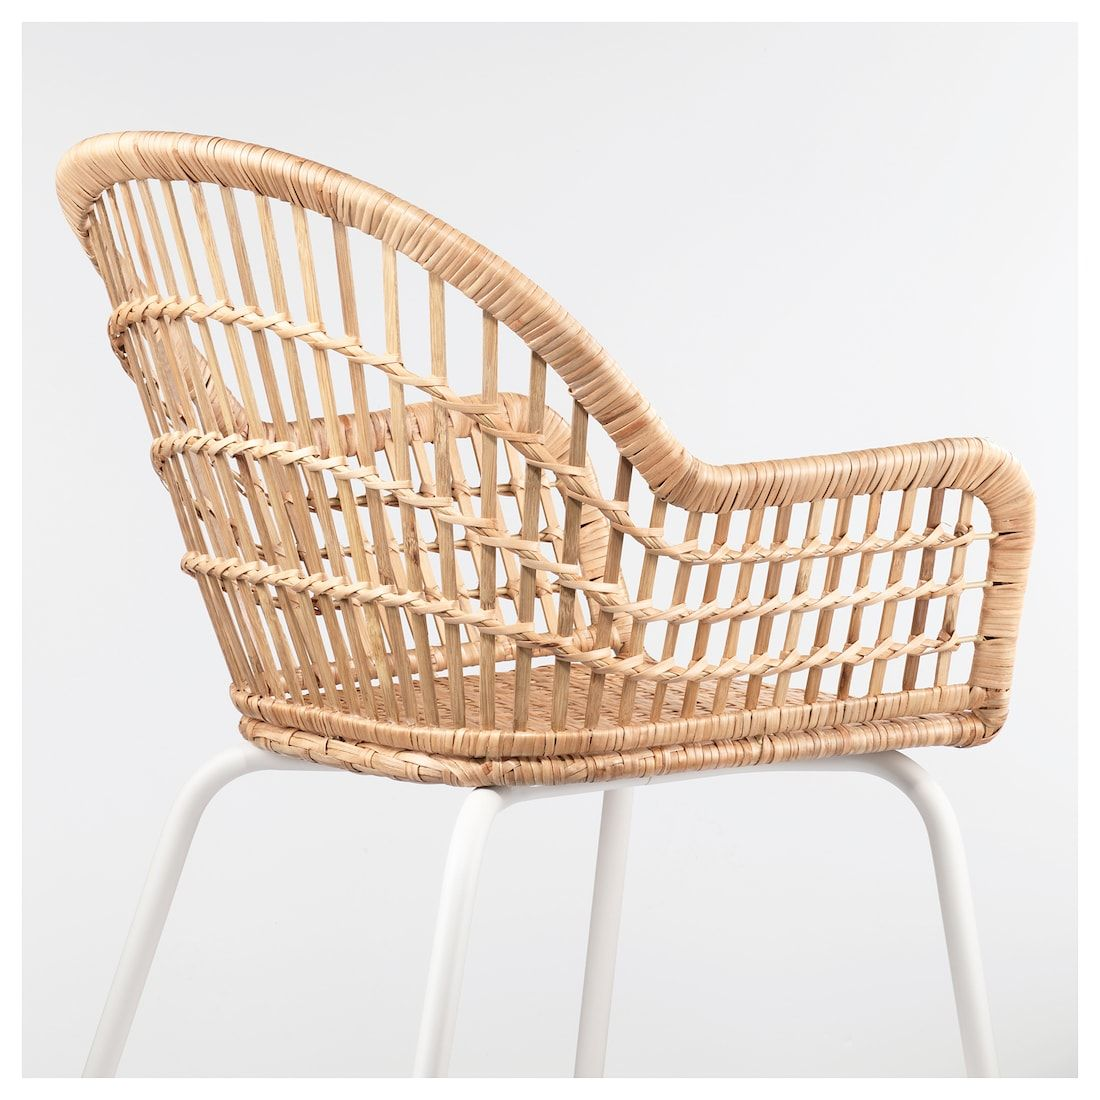 We rent white wicker bridal chairs! Plastic chair